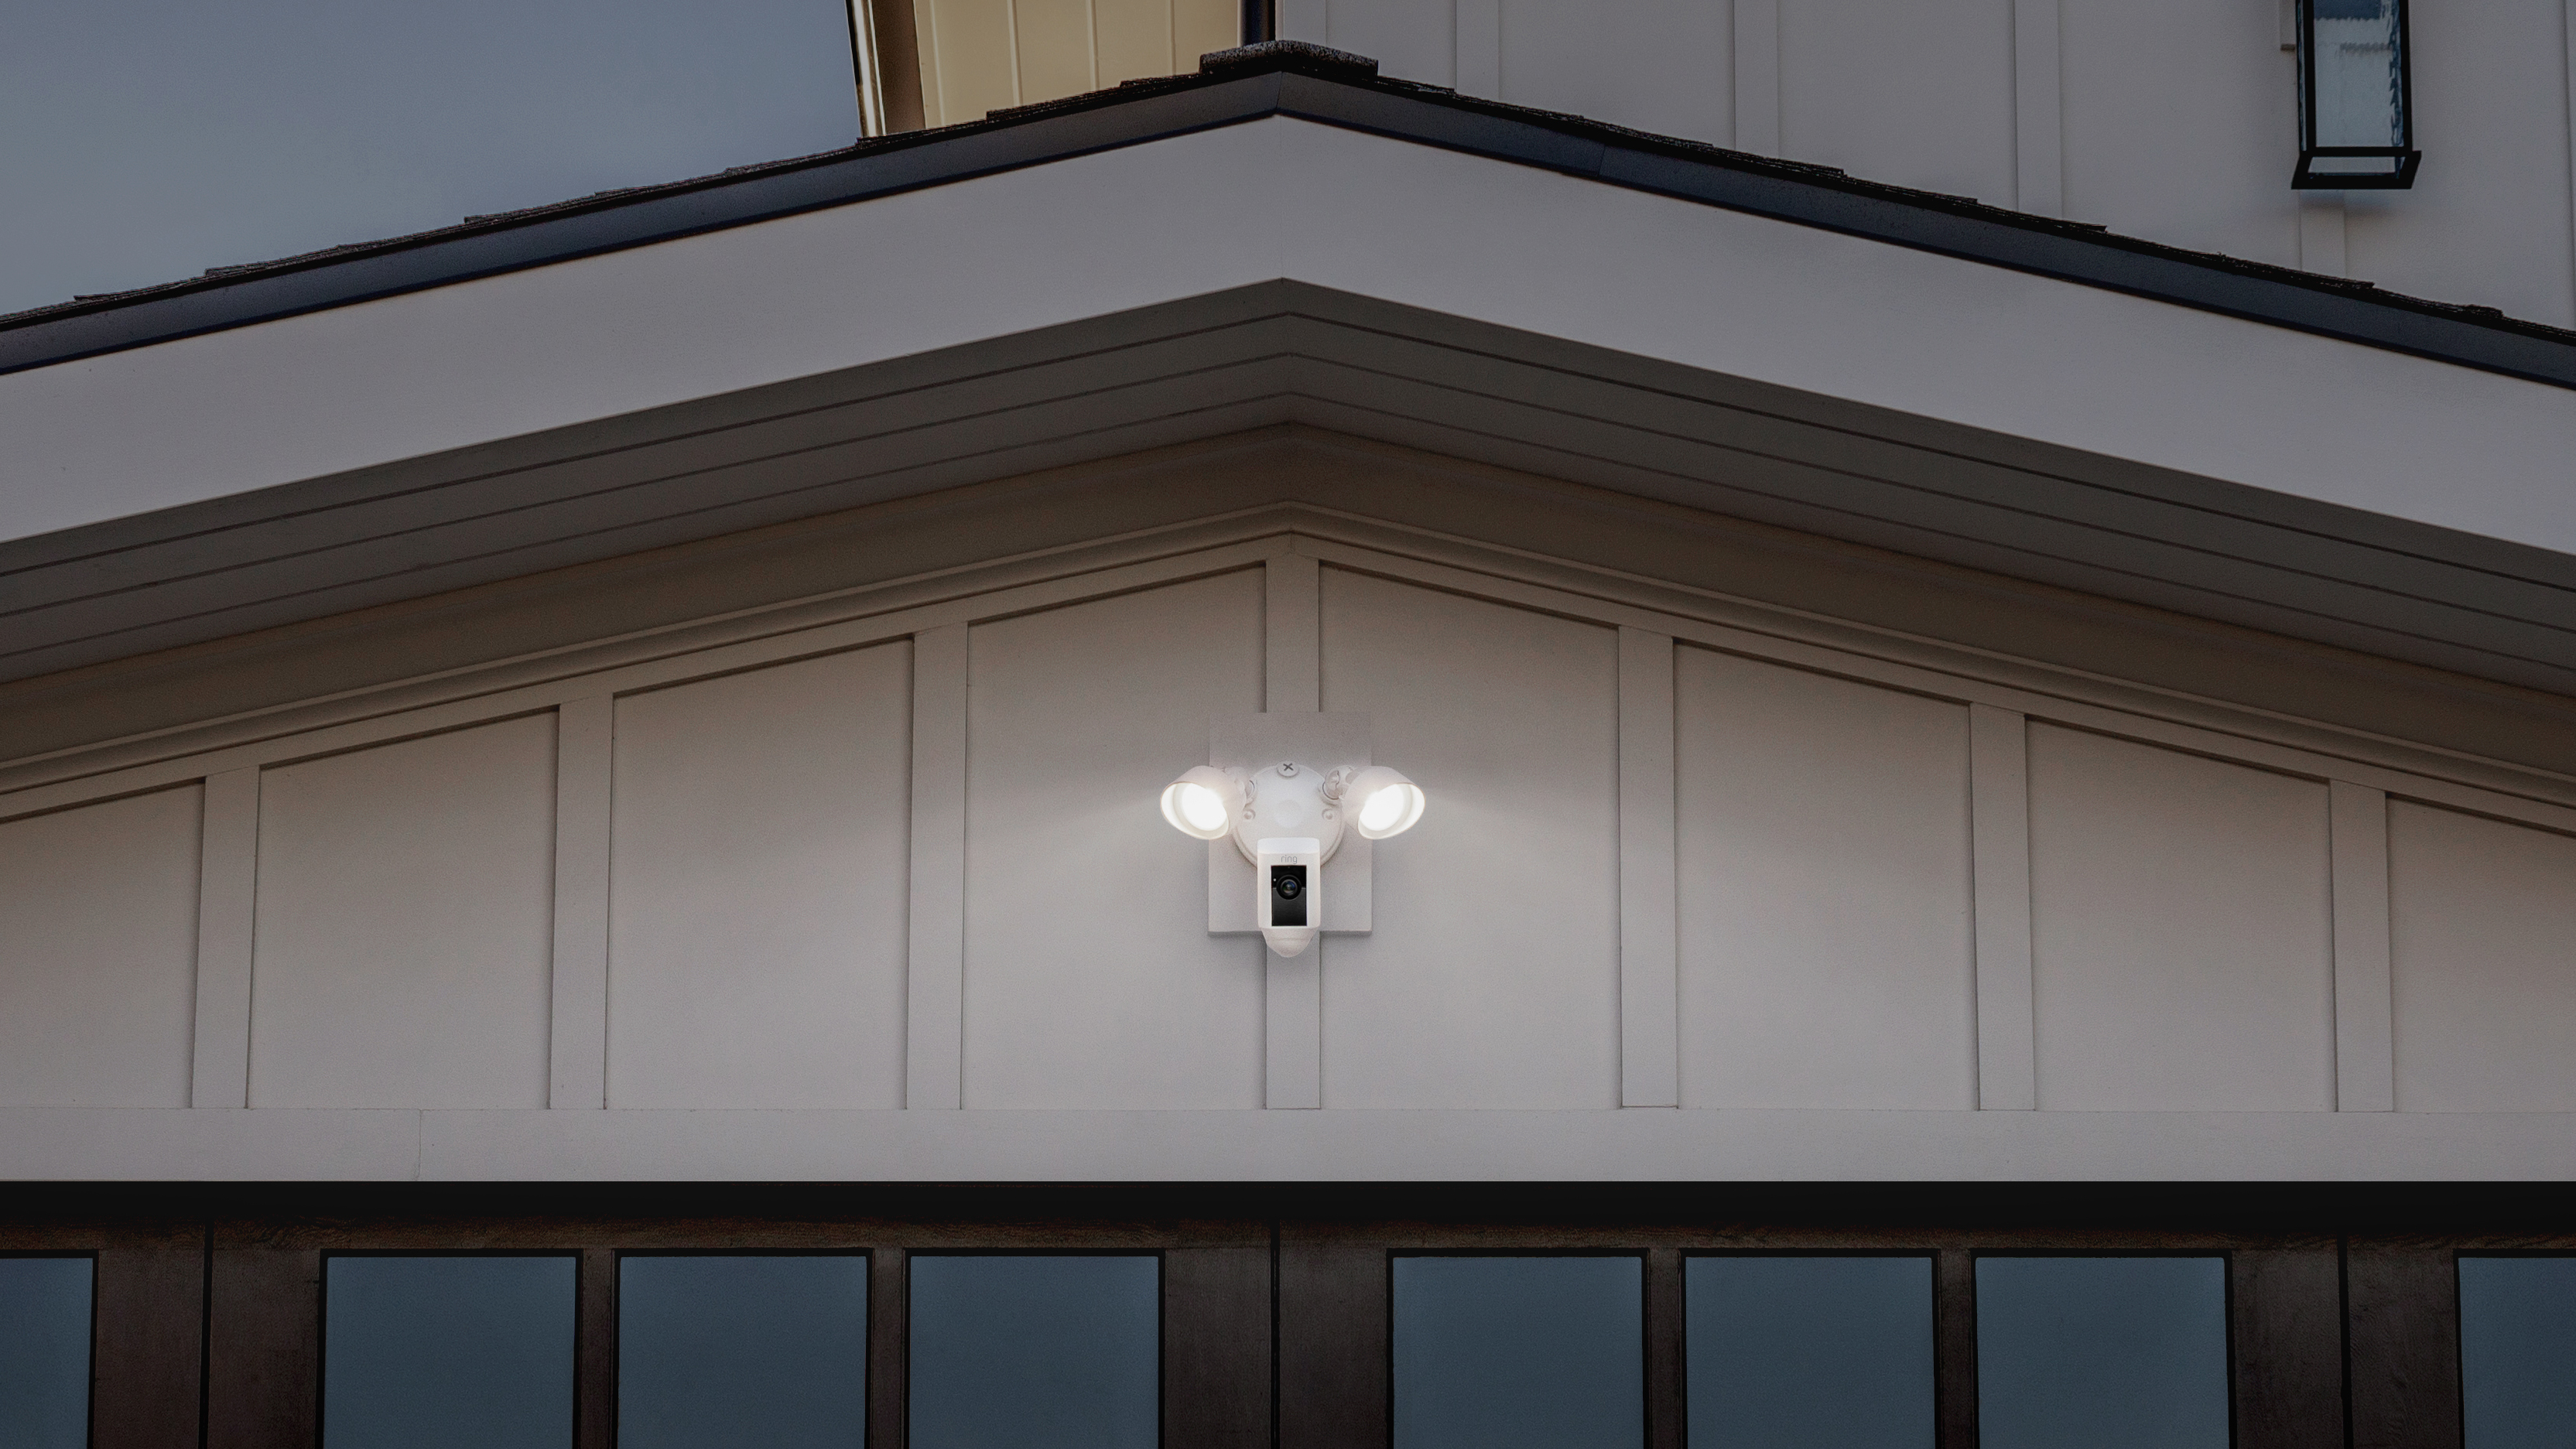 Best Outdoor Security Lights Enhance Your Home Security With These Flood Lights Real Homes